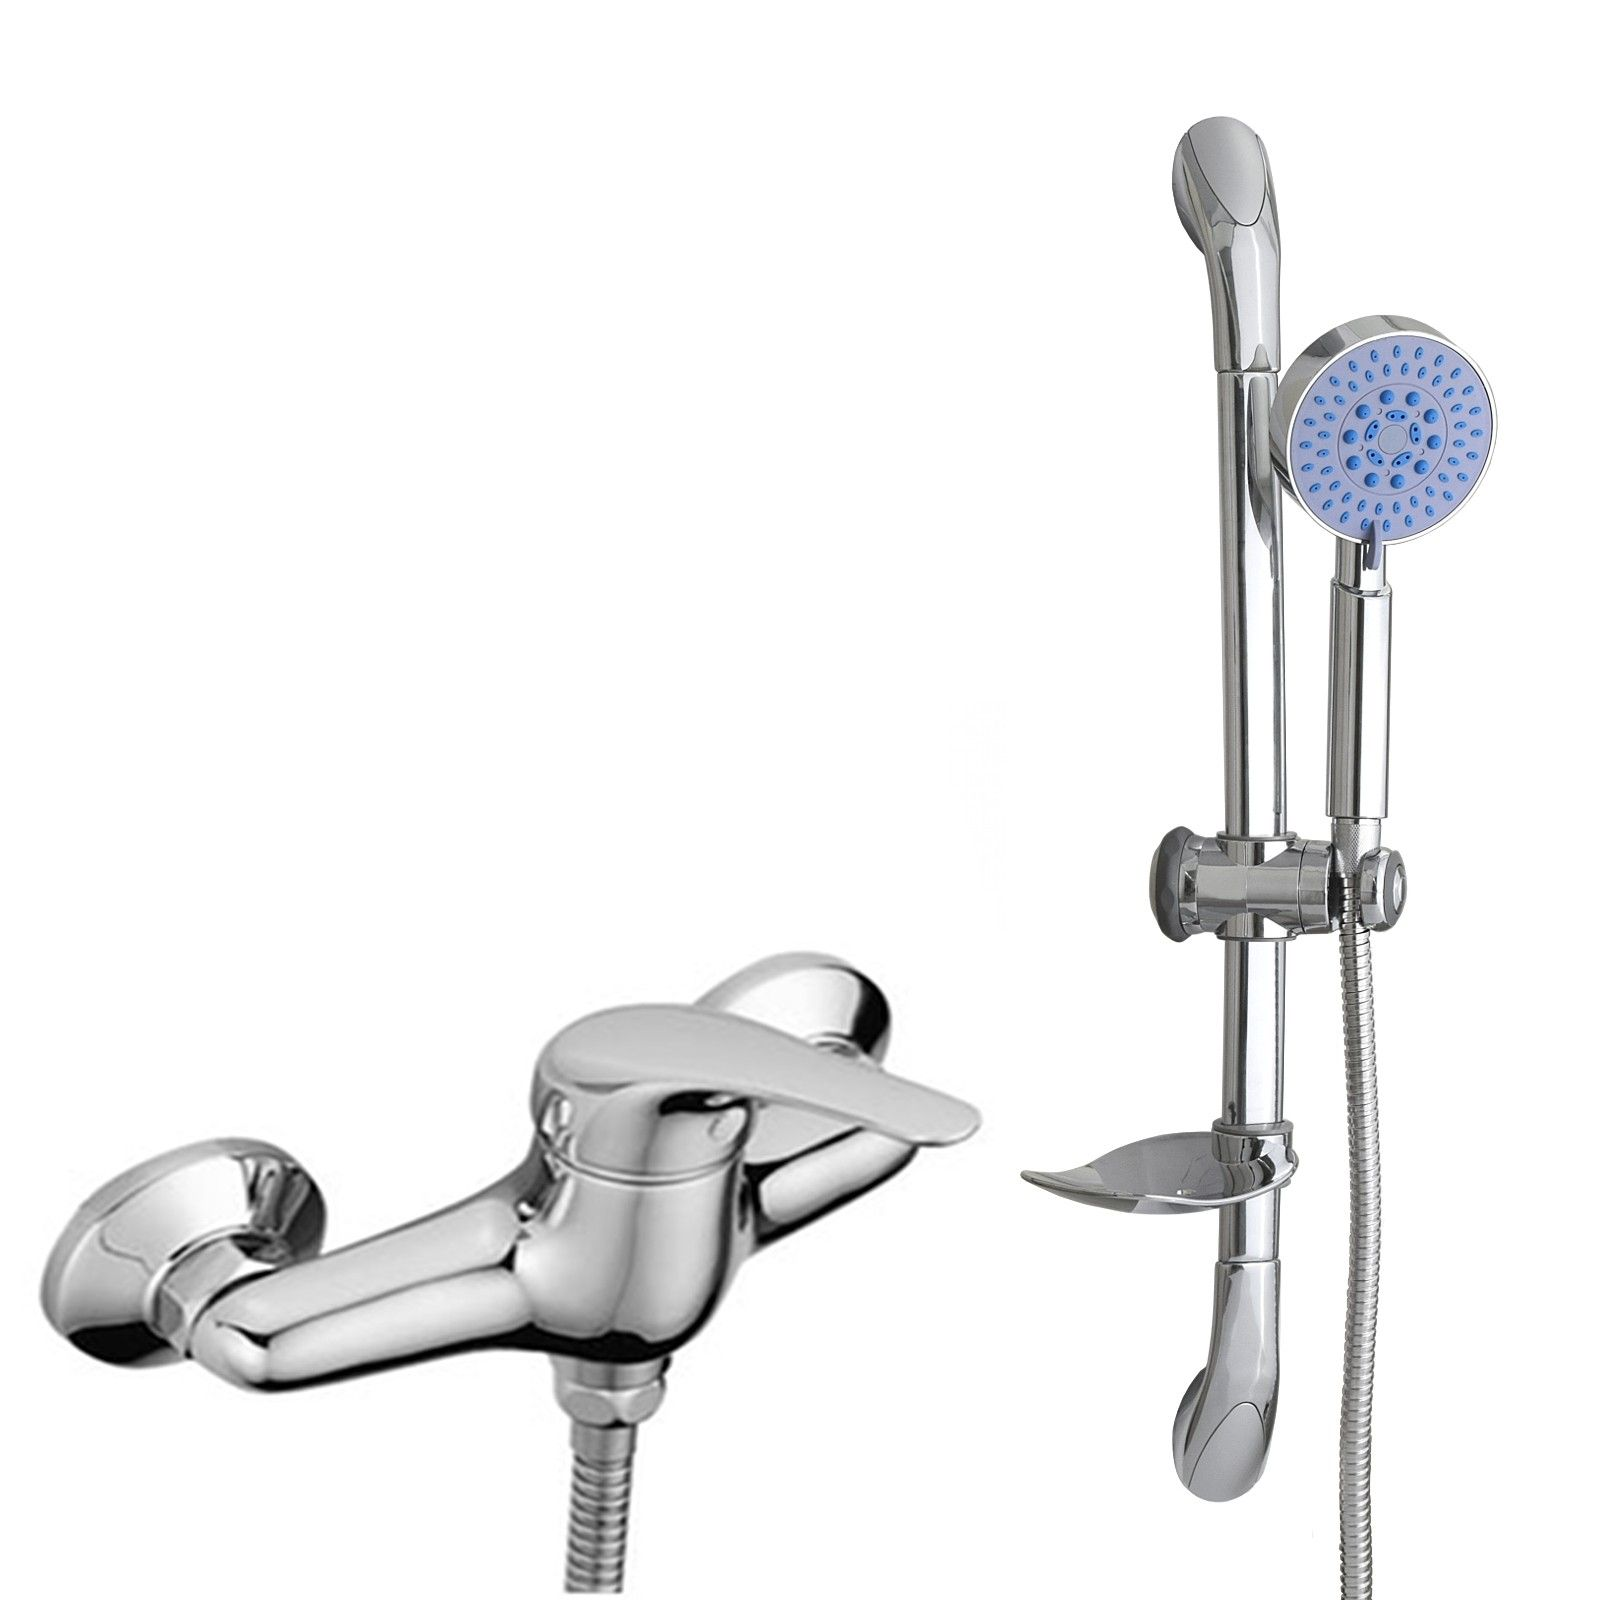 Multi Function Shower Head With Hose Grohe